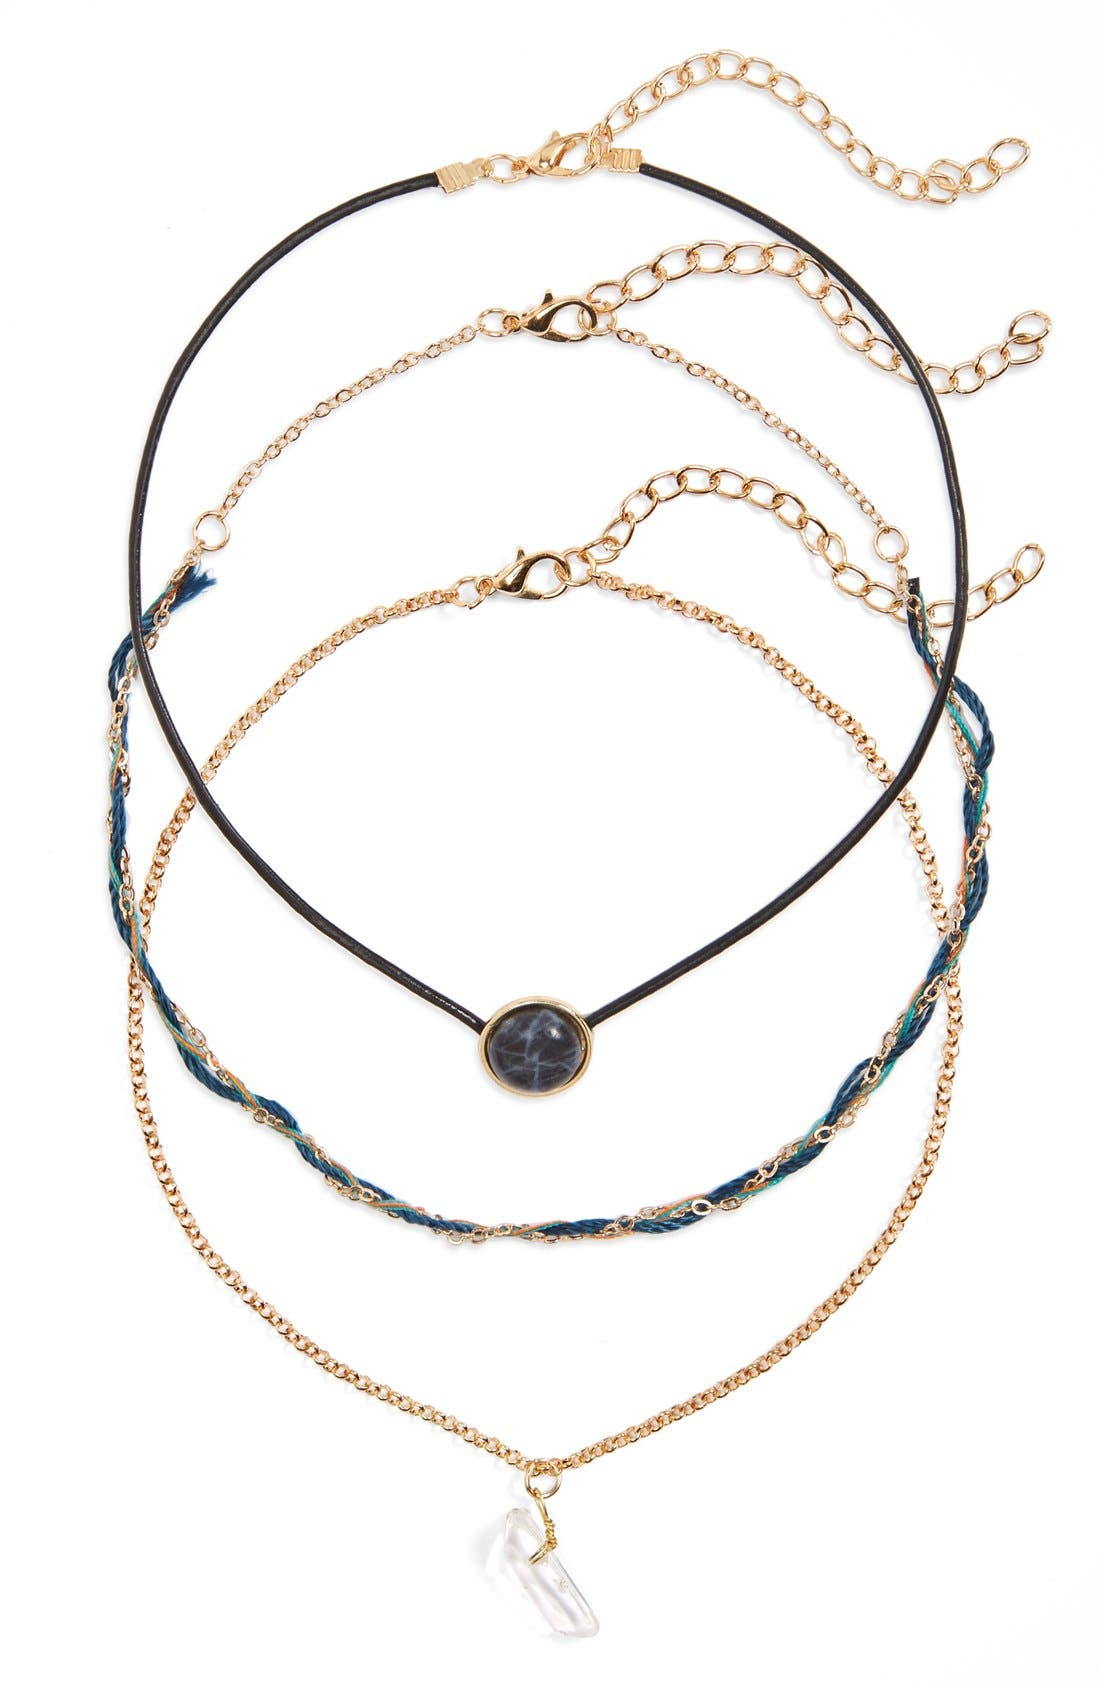 Alternate Image 1 Selected - BP. Mixed Media Choker Necklaces (Set of 3)